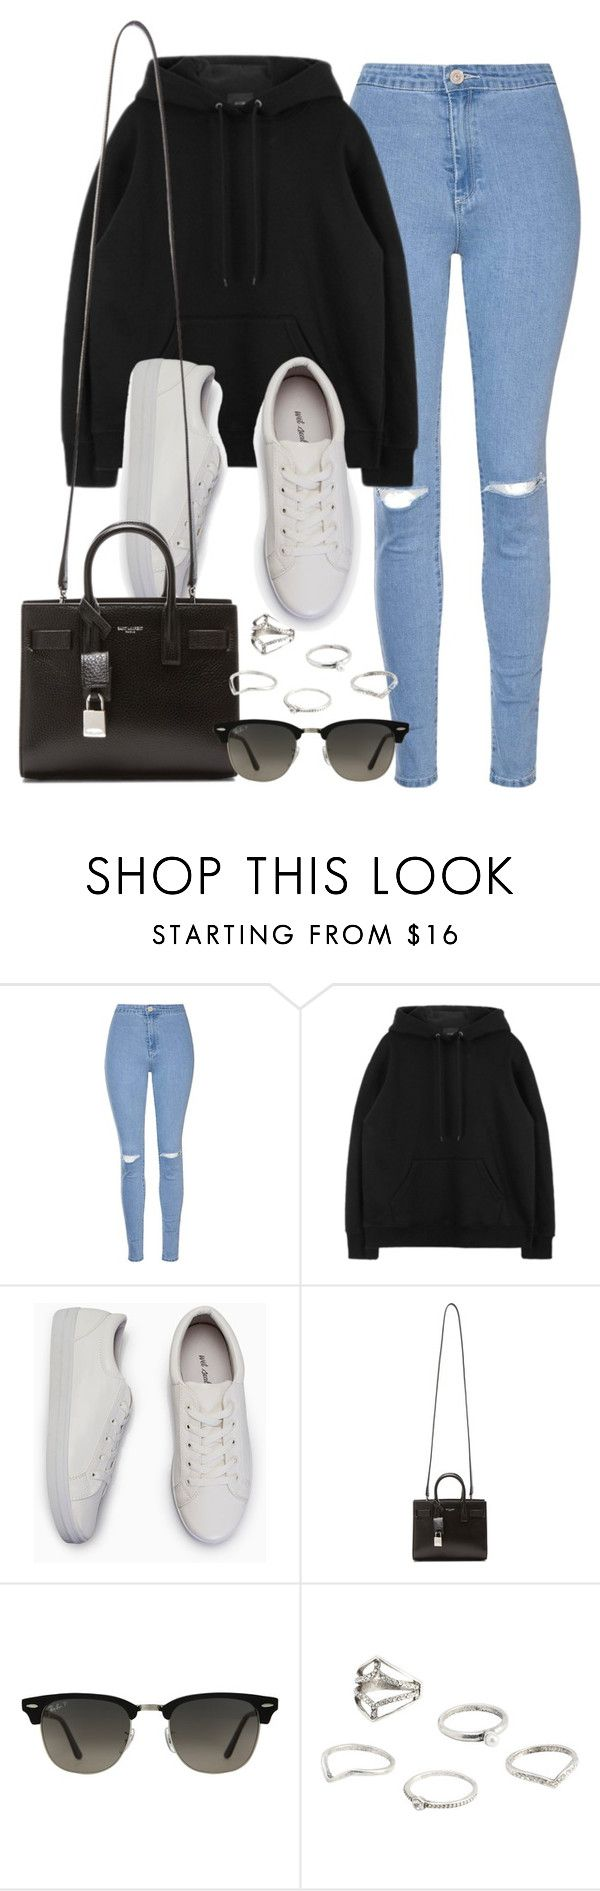 """""""Sin título #11986"""" by vany-alvarado ❤ liked on Polyvore featuring Glamorous, Yves Saint Laurent, Ray-Ban and MANGO"""